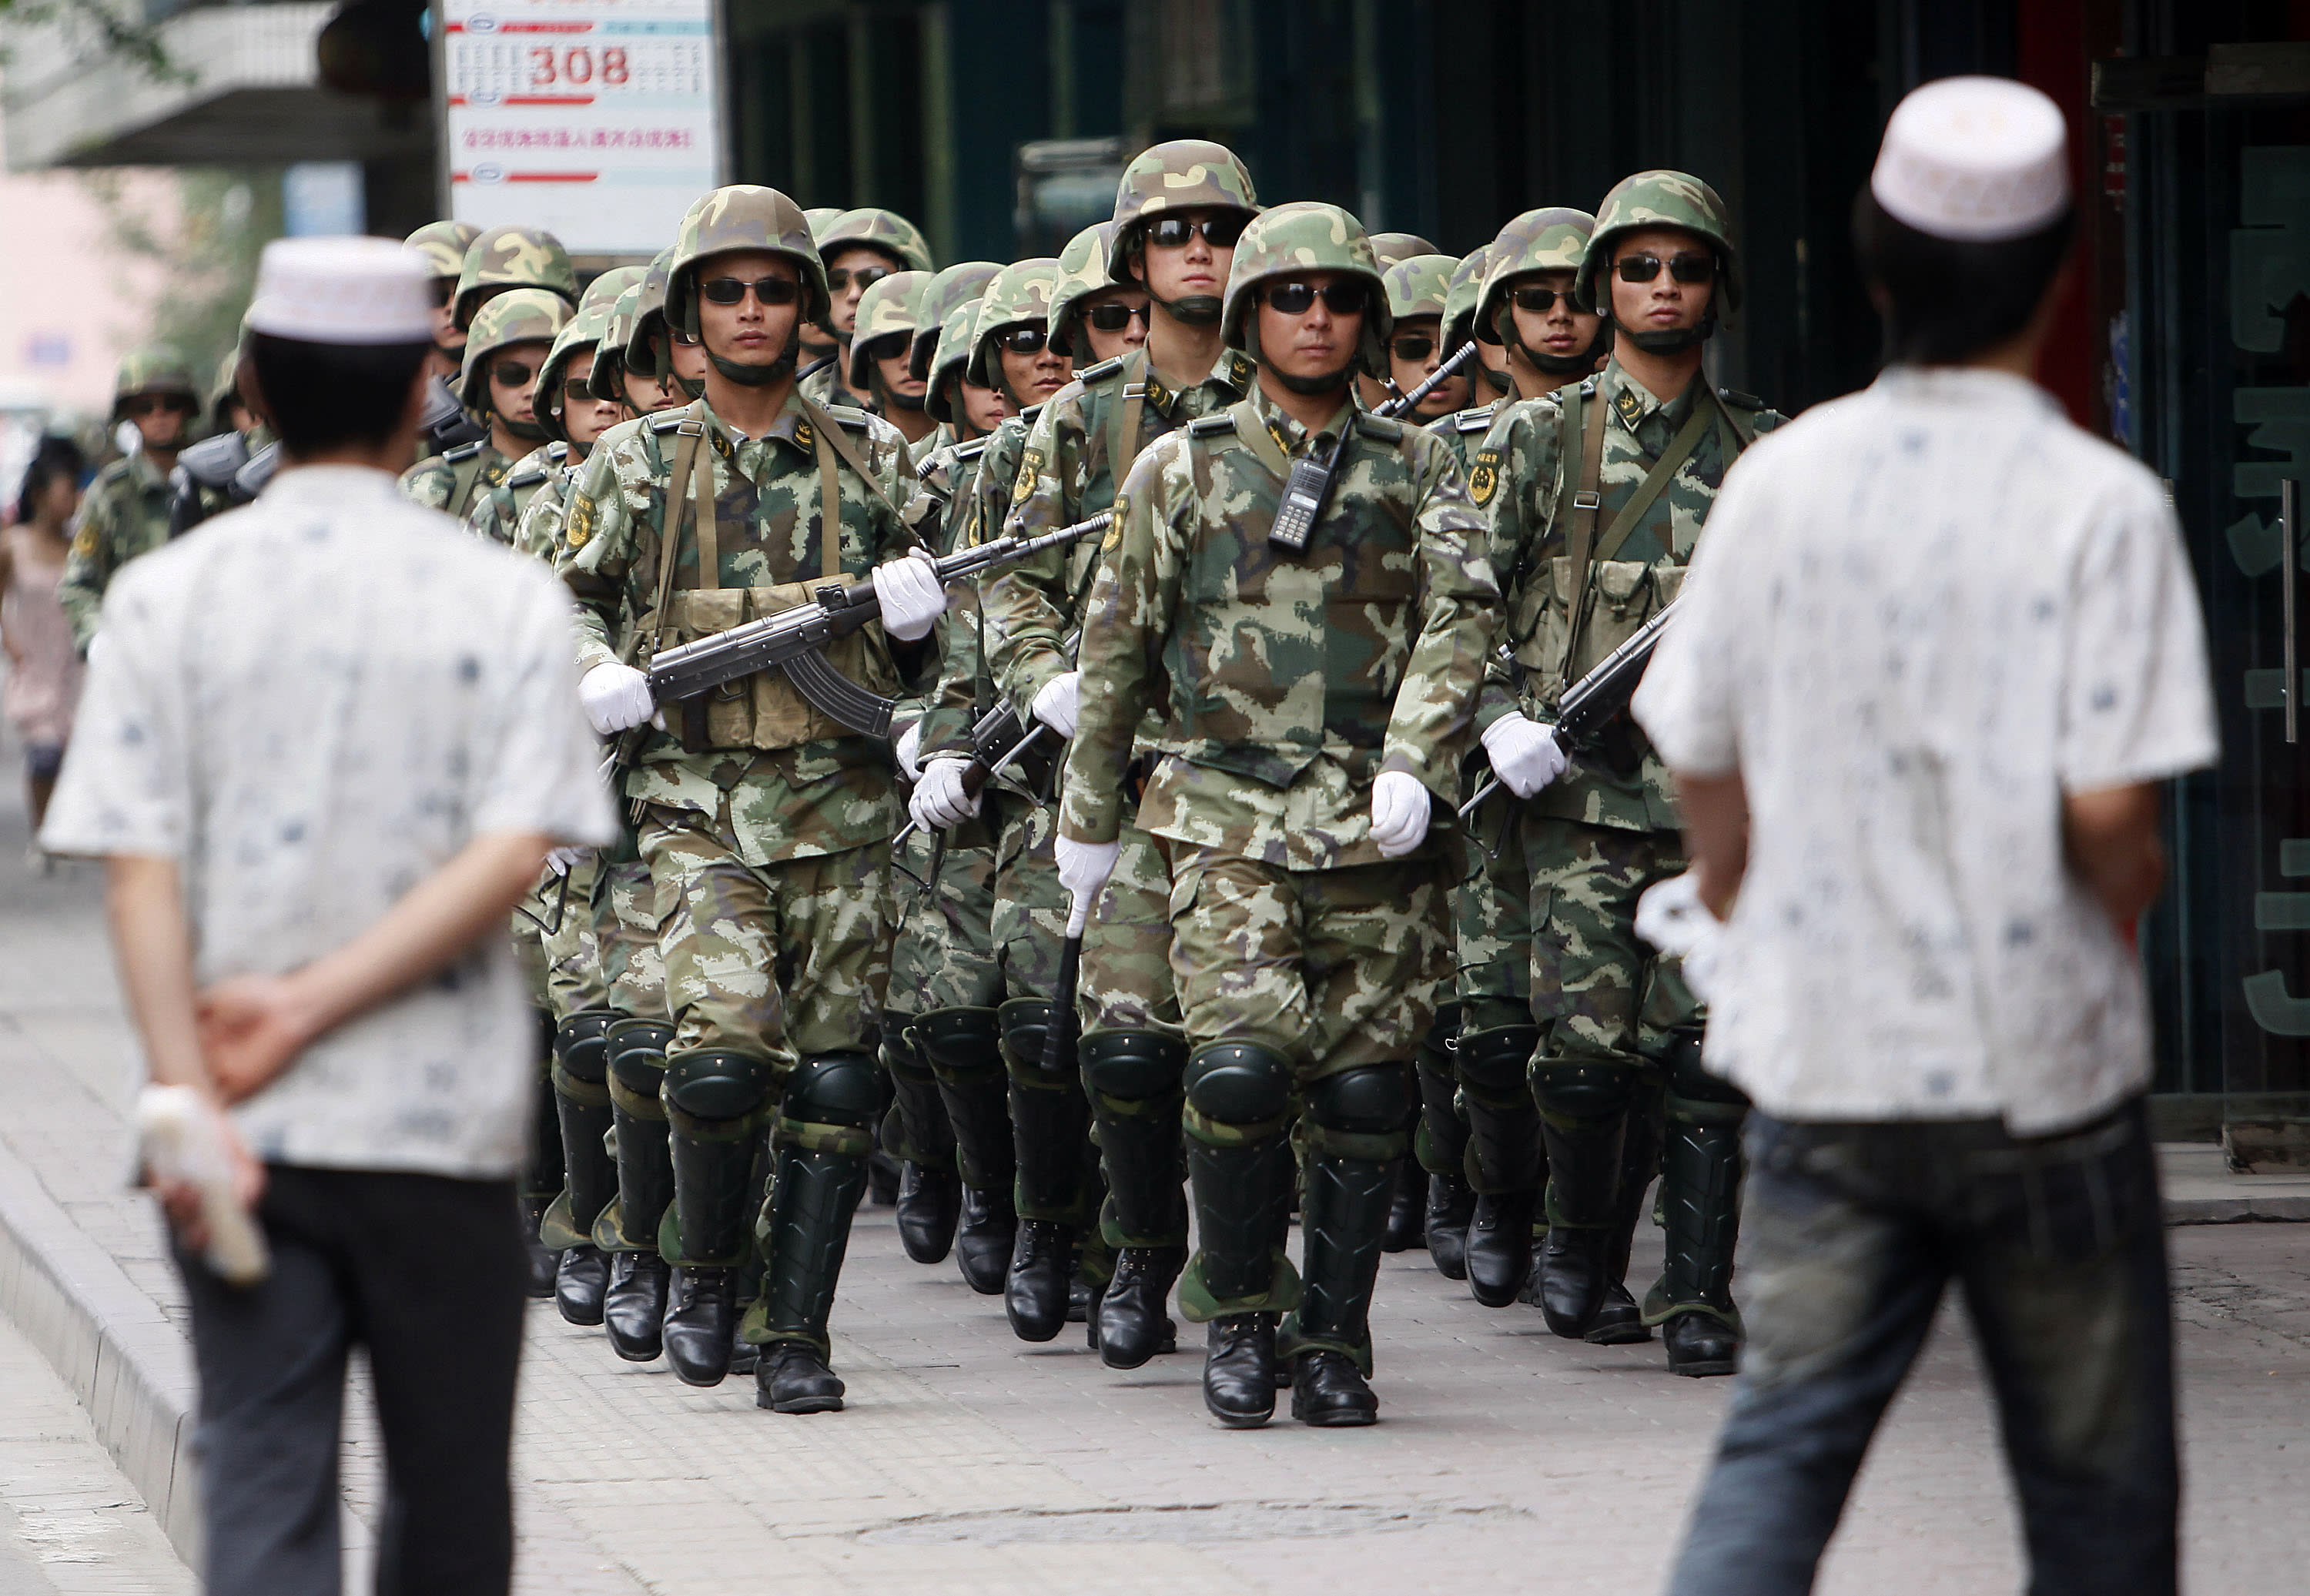 """FILE - In this Monday, July 13, 2009, file photo, paramilitary police officers patrol in the aftermath of riots as Uighur men walk by in Urumqi, western China's Xinjiang province. Analysts say the Urumqi riots in 2009 set in motion the harsh security measures now in place across Xinjiang, where about 1 million Uighurs, Kazakhs and other Muslims are estimated to be held in heavily-guarded internment camps _ also called """"re-education"""" camps _ which the Chinese government describes as vocational training centers. (AP Photo/Eugene Hoshiko, File)"""